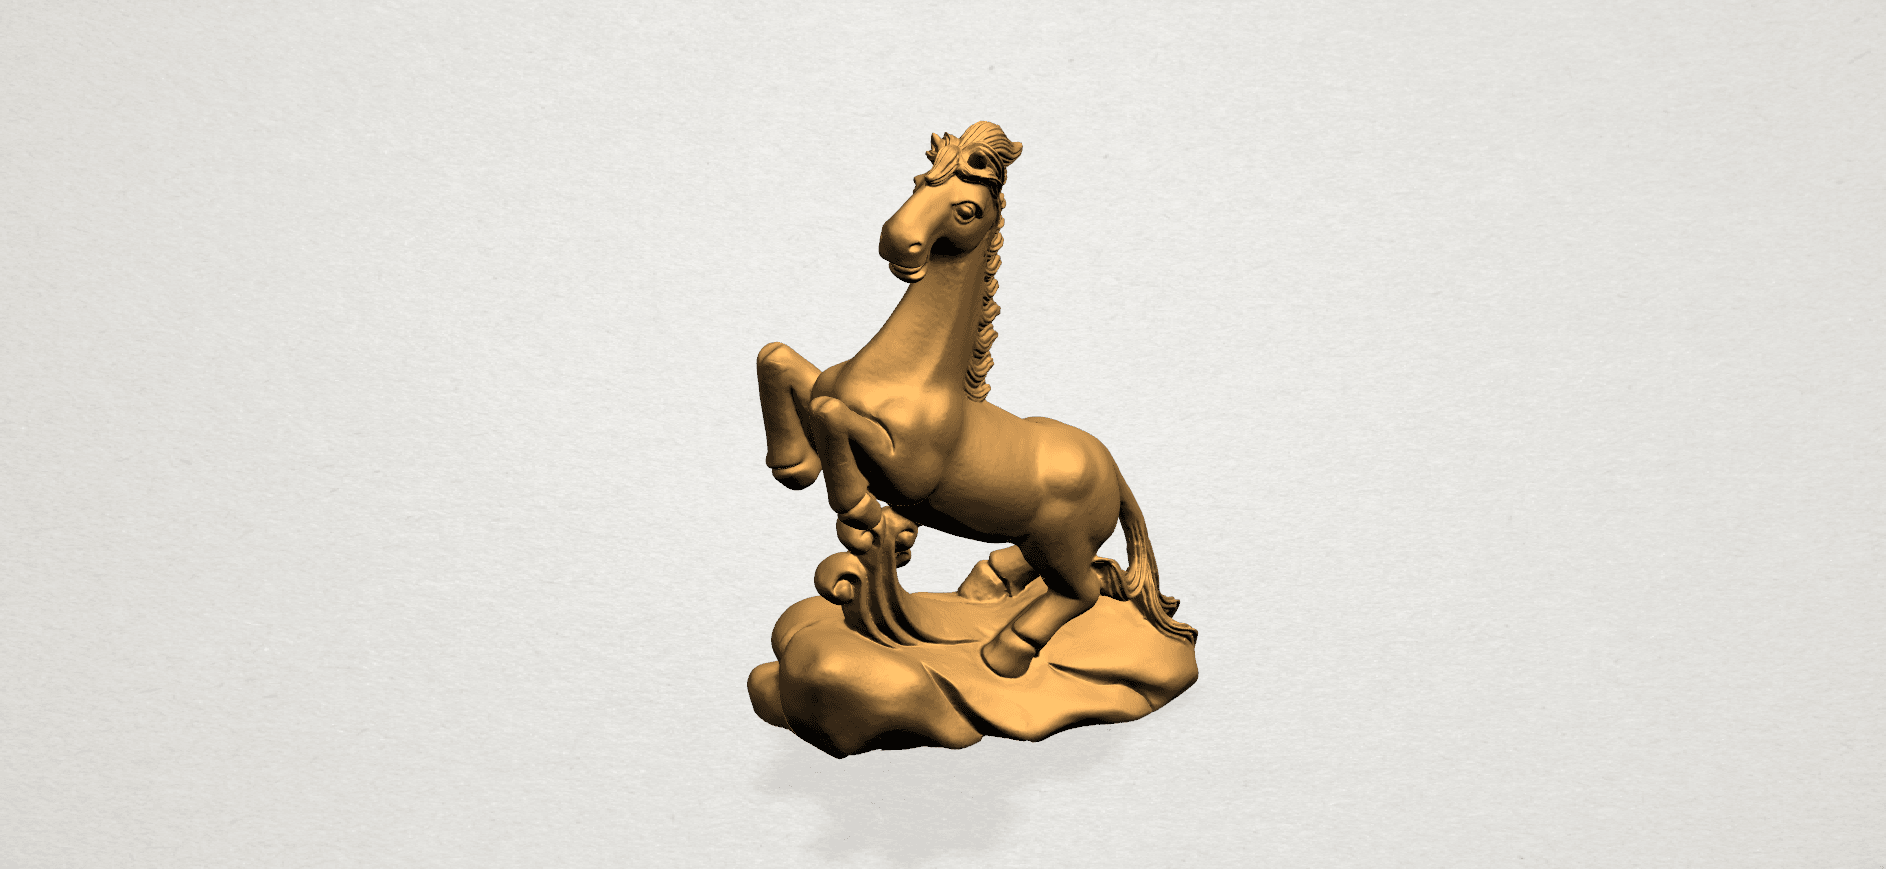 Chinese Horoscope07-A03.png Télécharger fichier STL gratuit Horoscope Chinois 07 Cheval Chinois • Design imprimable en 3D, GeorgesNikkei